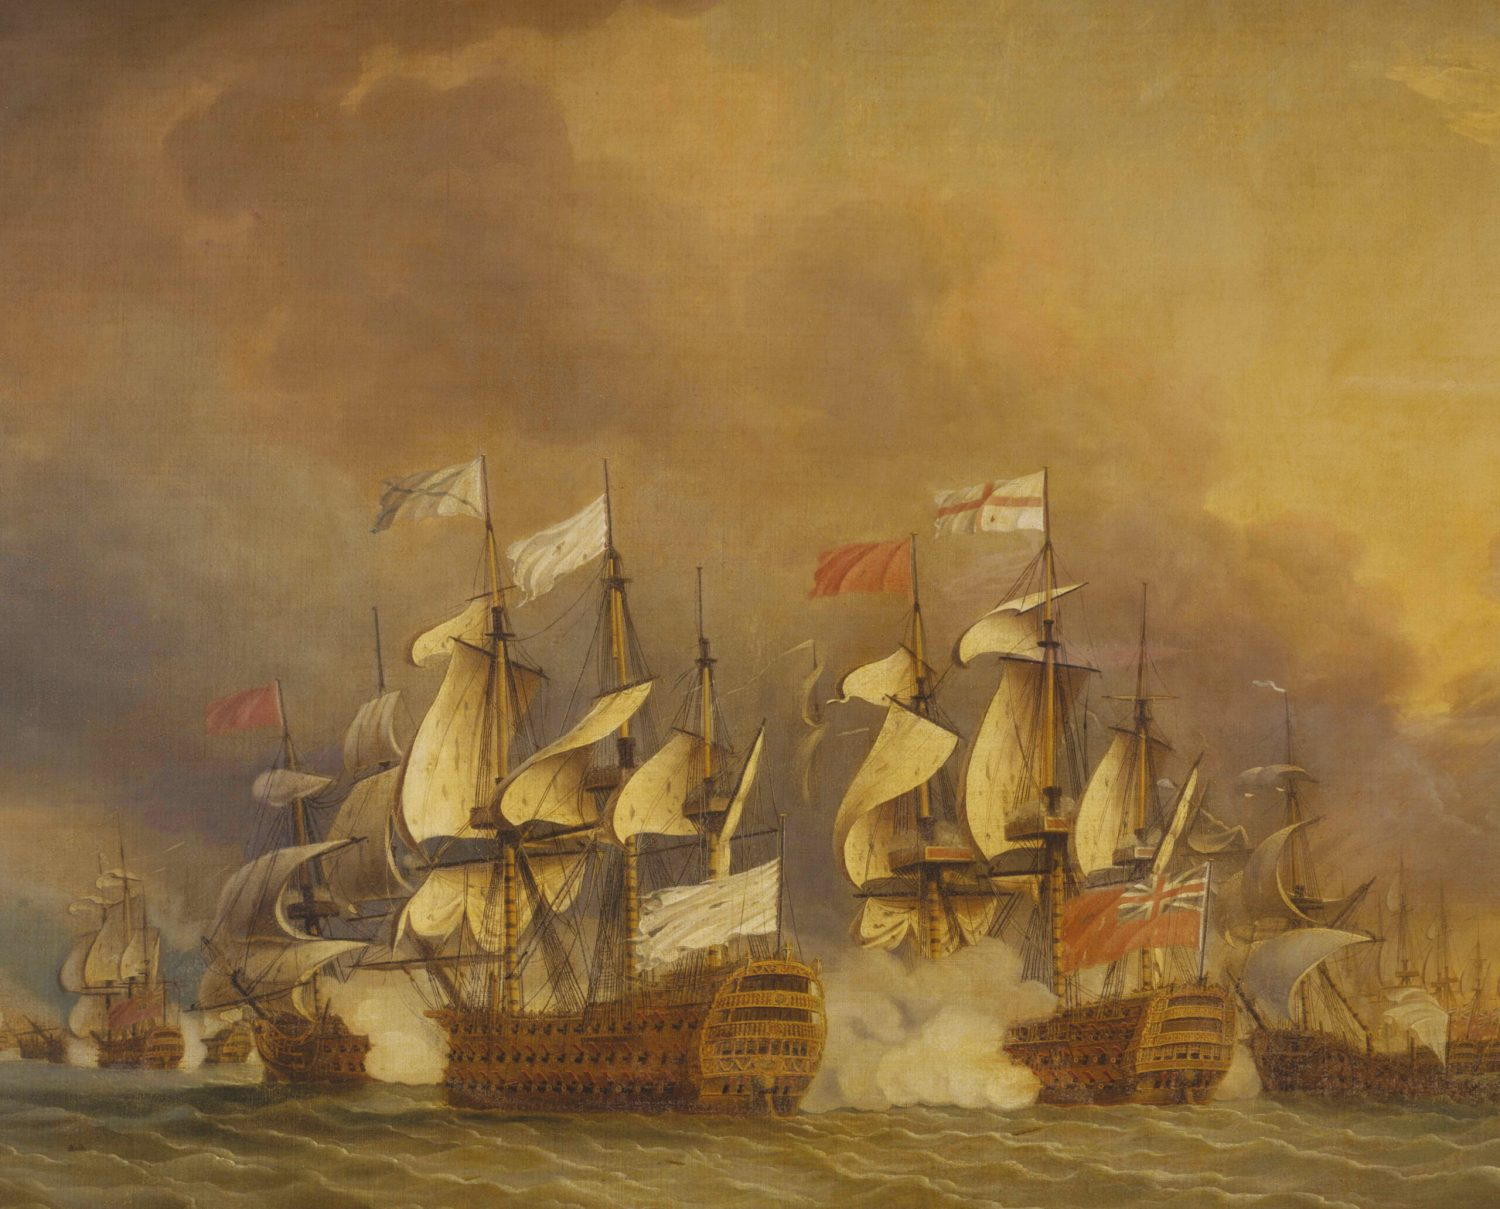 BELOW The Battle of the Saintes, 1782. Detail from a painting by Thomas Mitchell. Admiral George Rodney's tactic of 'breaking the line' may have been accidental, but it was hailed at the time as a stroke of genius.